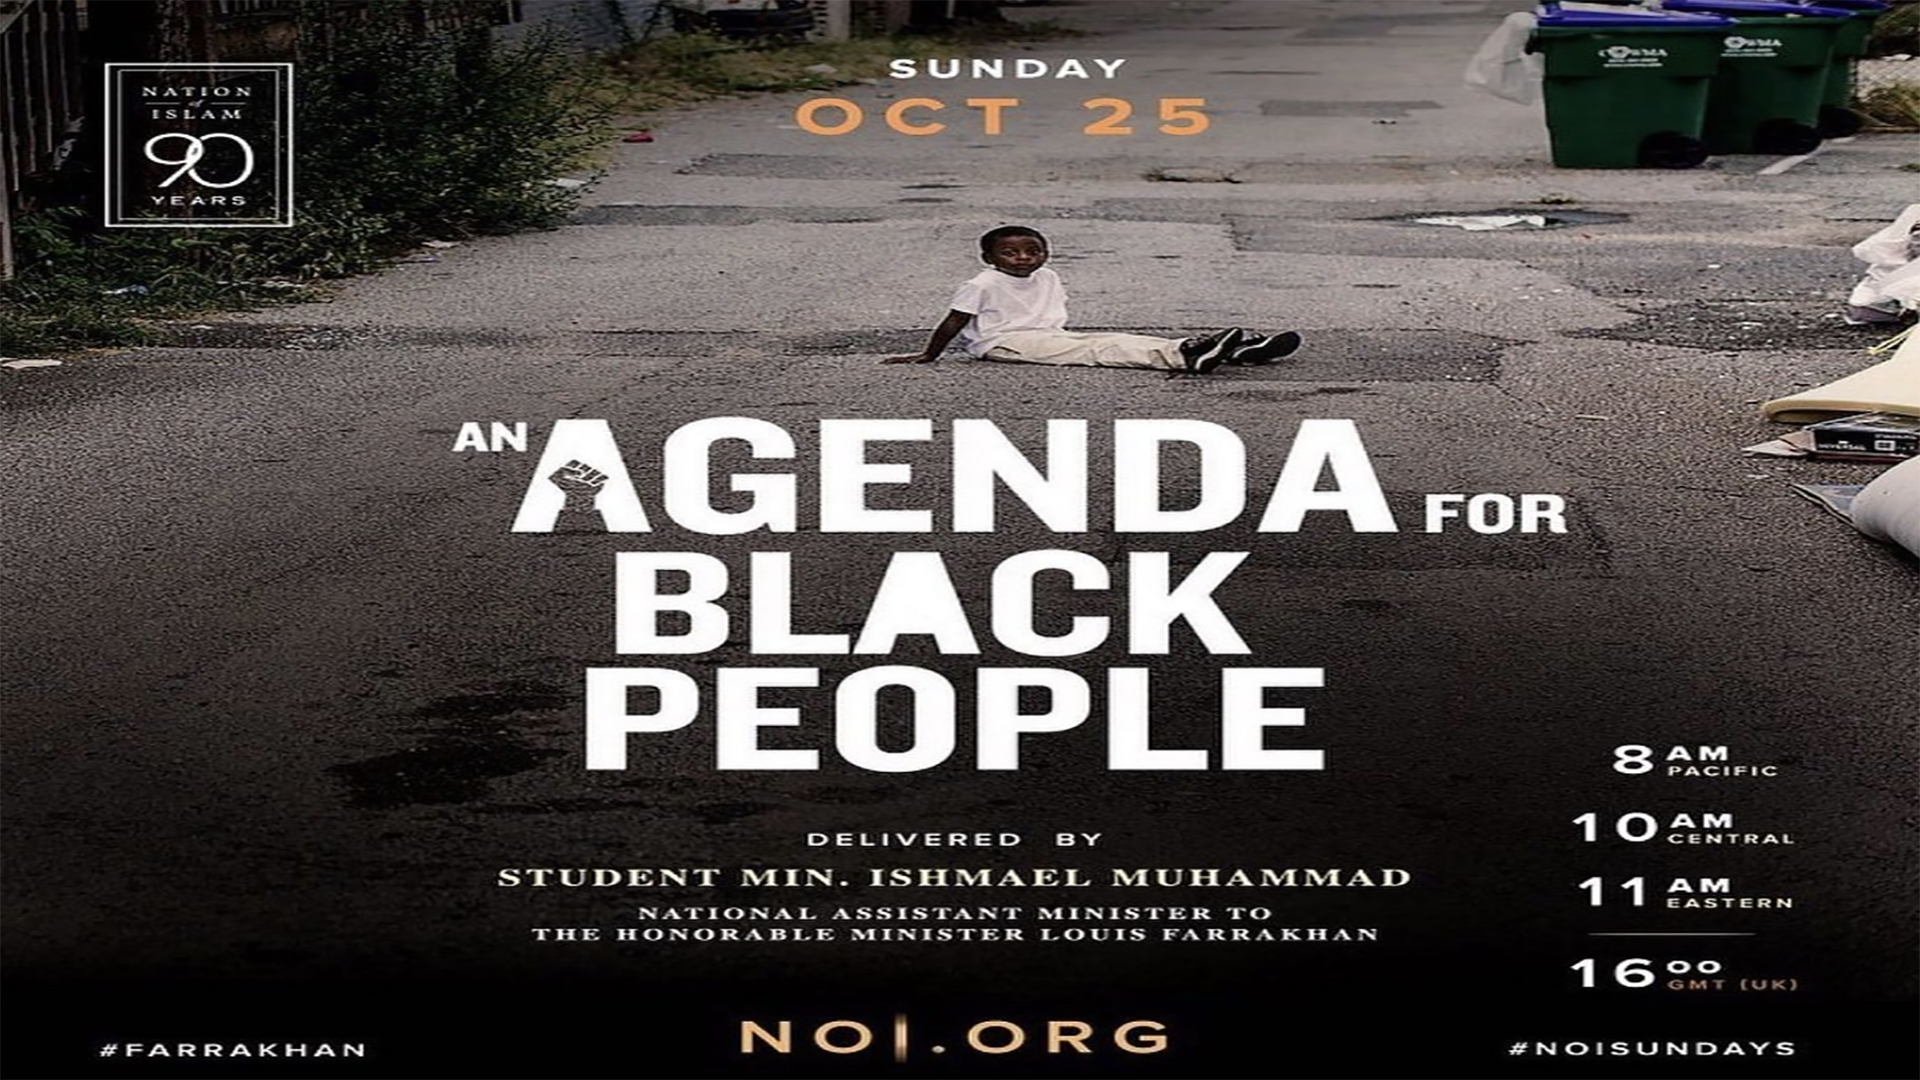 An Agenda for Black People